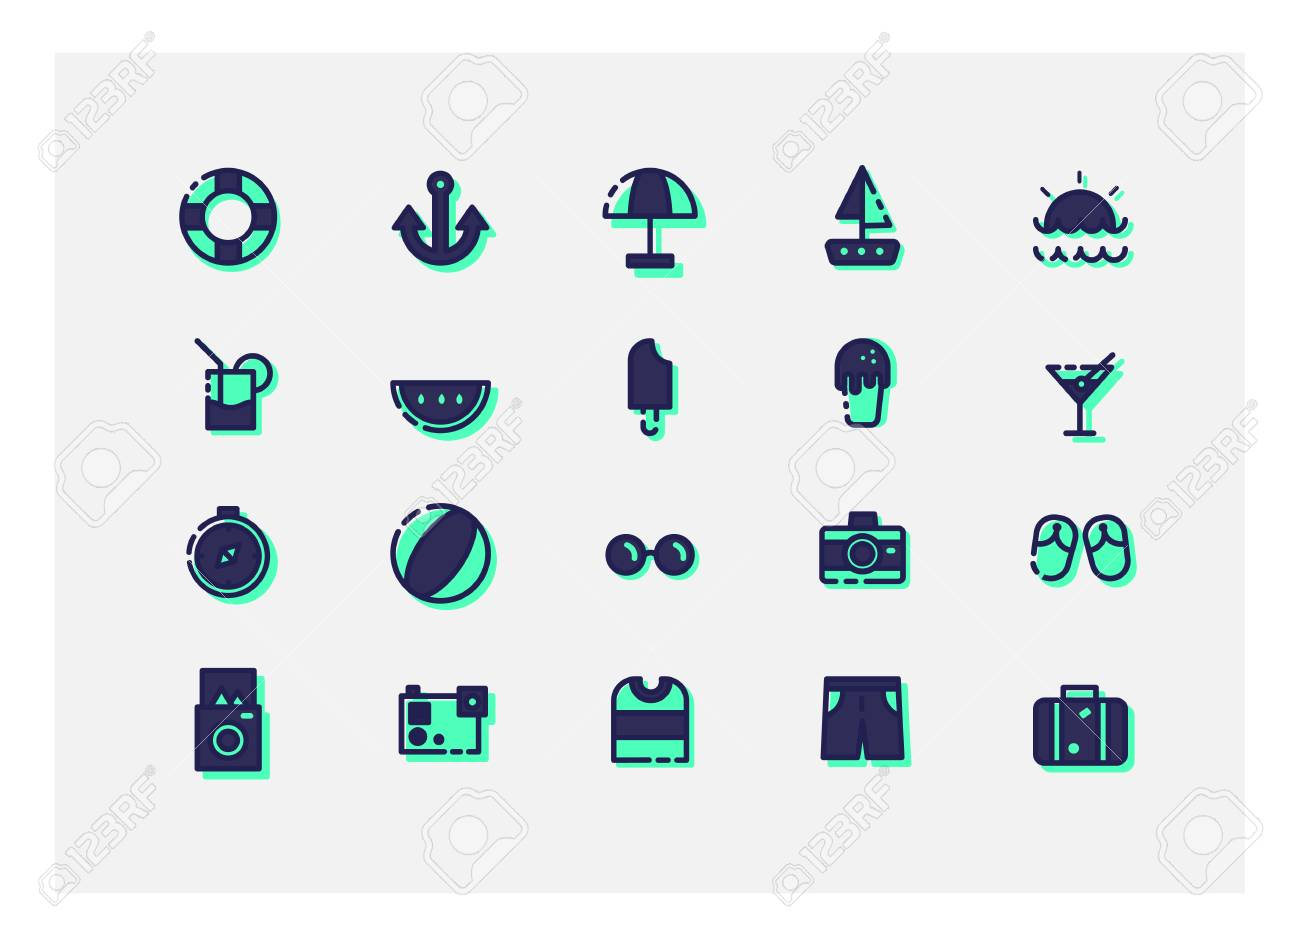 summer icon set vector line icons royalty free cliparts vectors and stock illustration image 59205203 123rf com